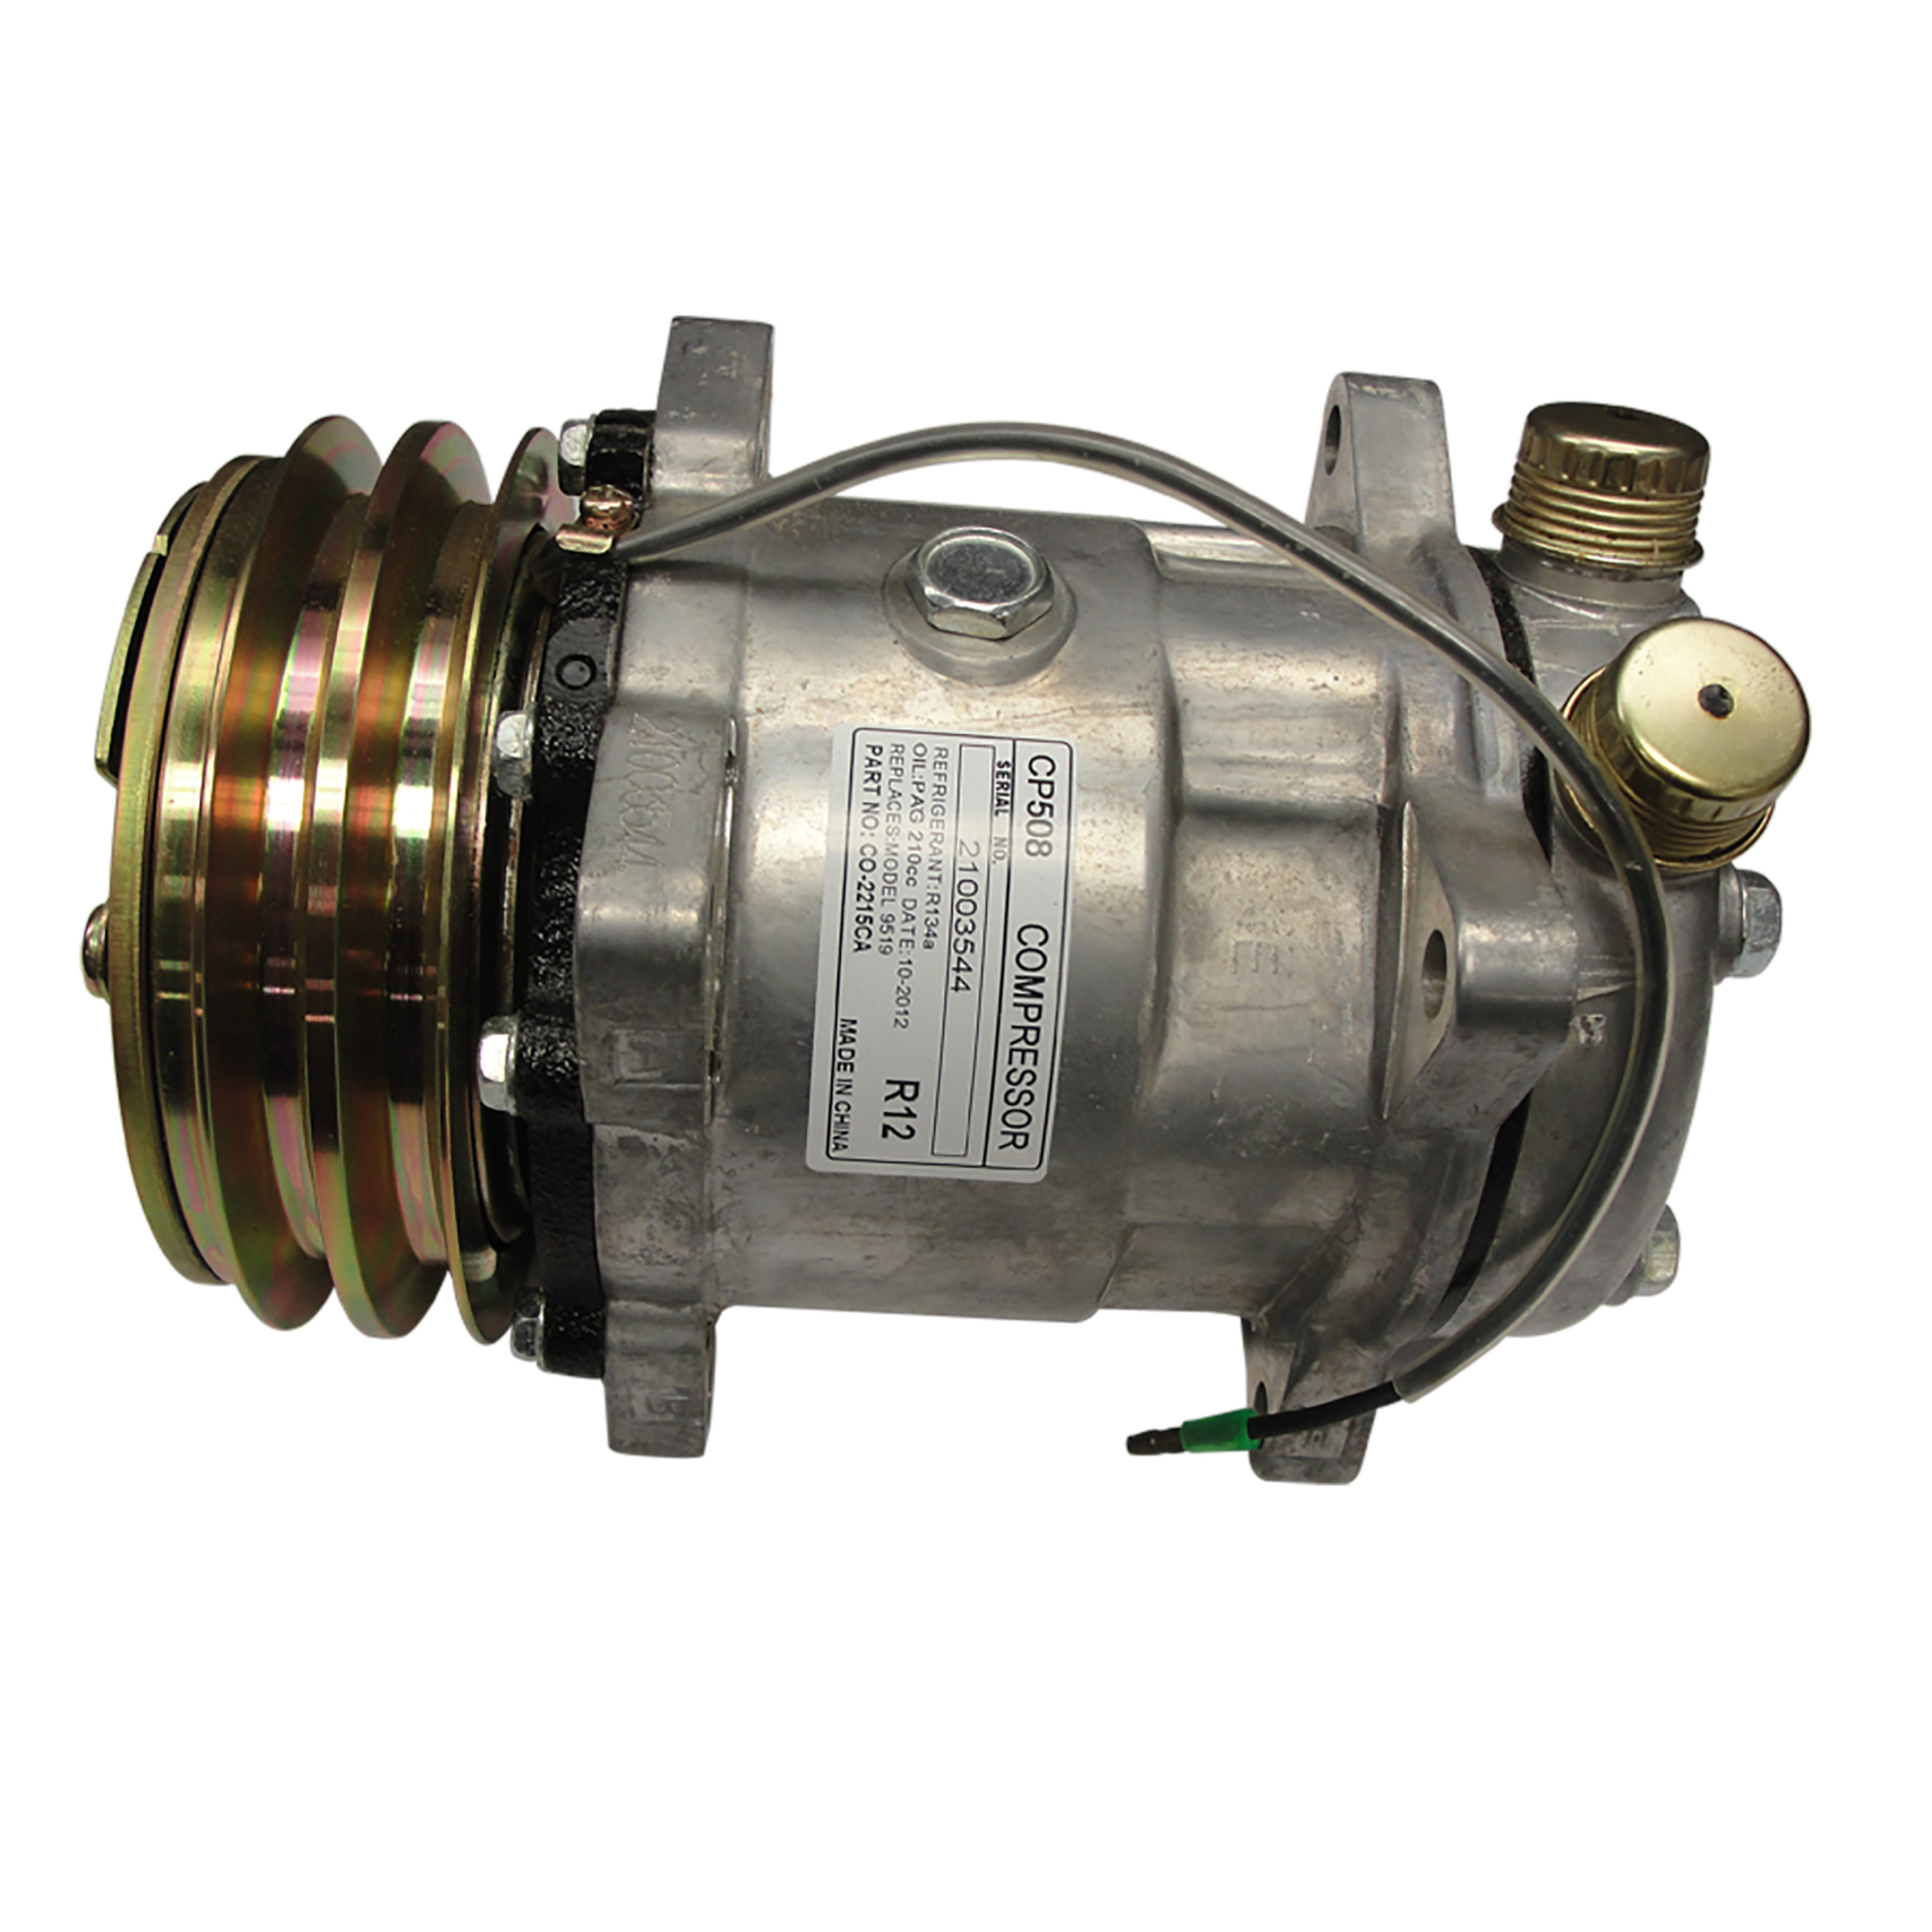 International Harvester Compressor Diameter: 5 1/2